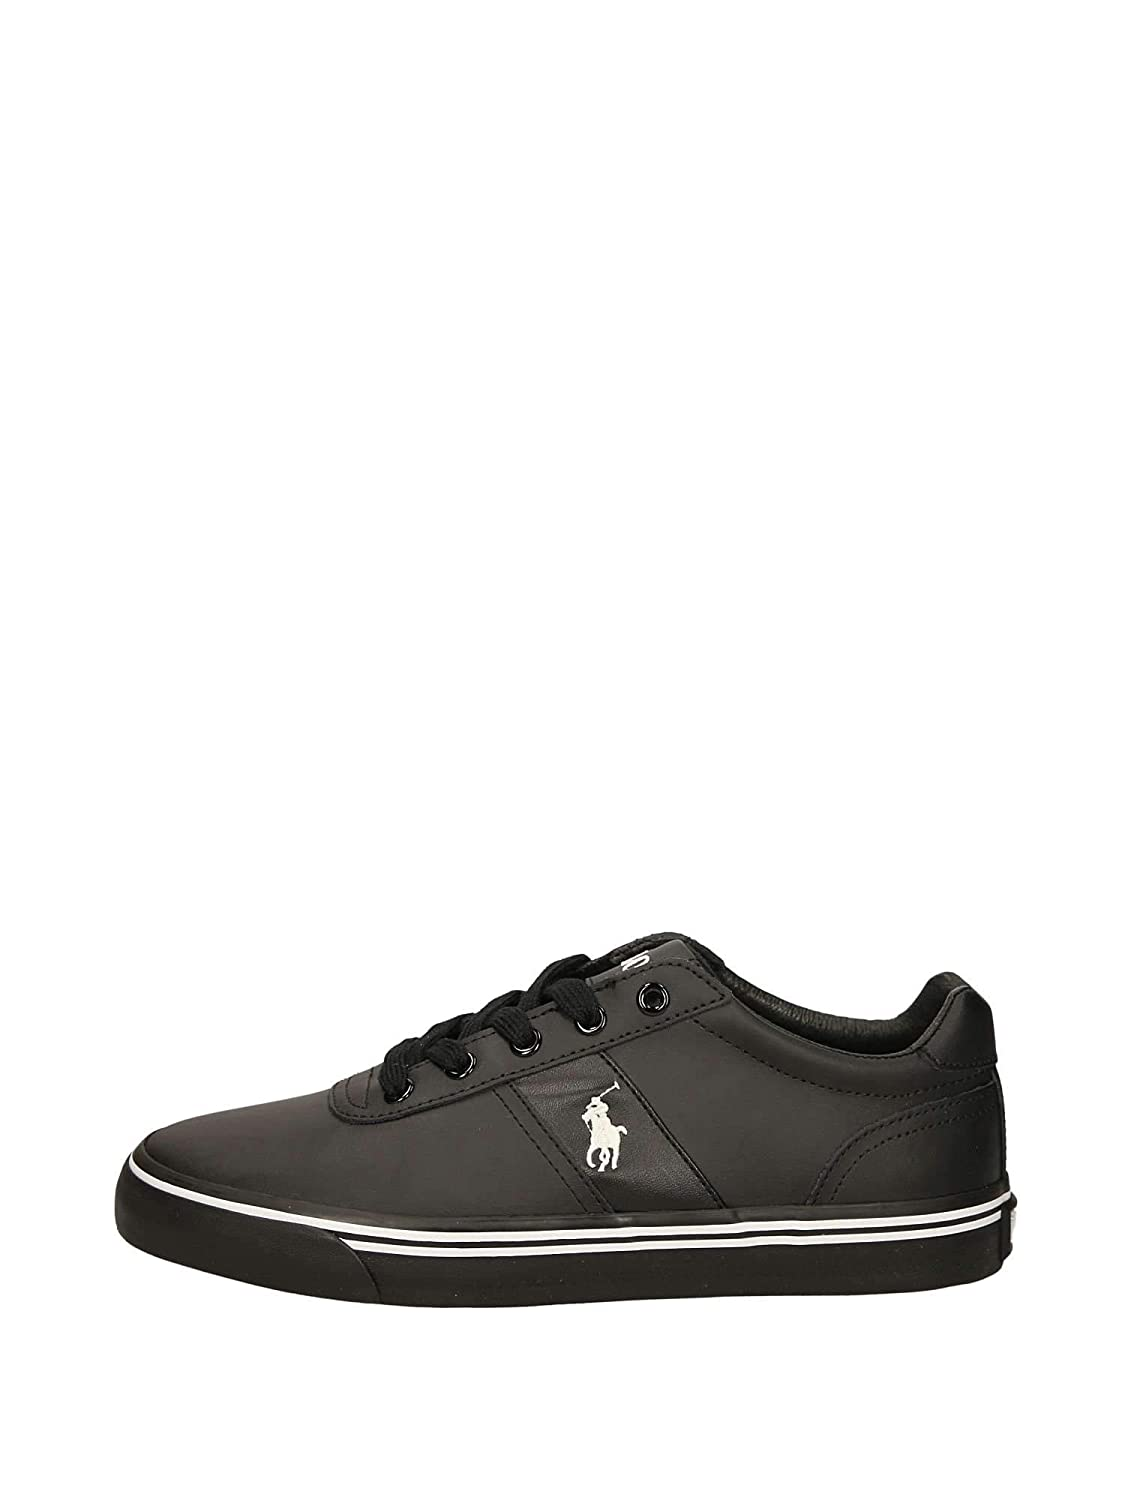 TALLA 42 EU. Zapatillas Polo Ralph Lauren Hanford